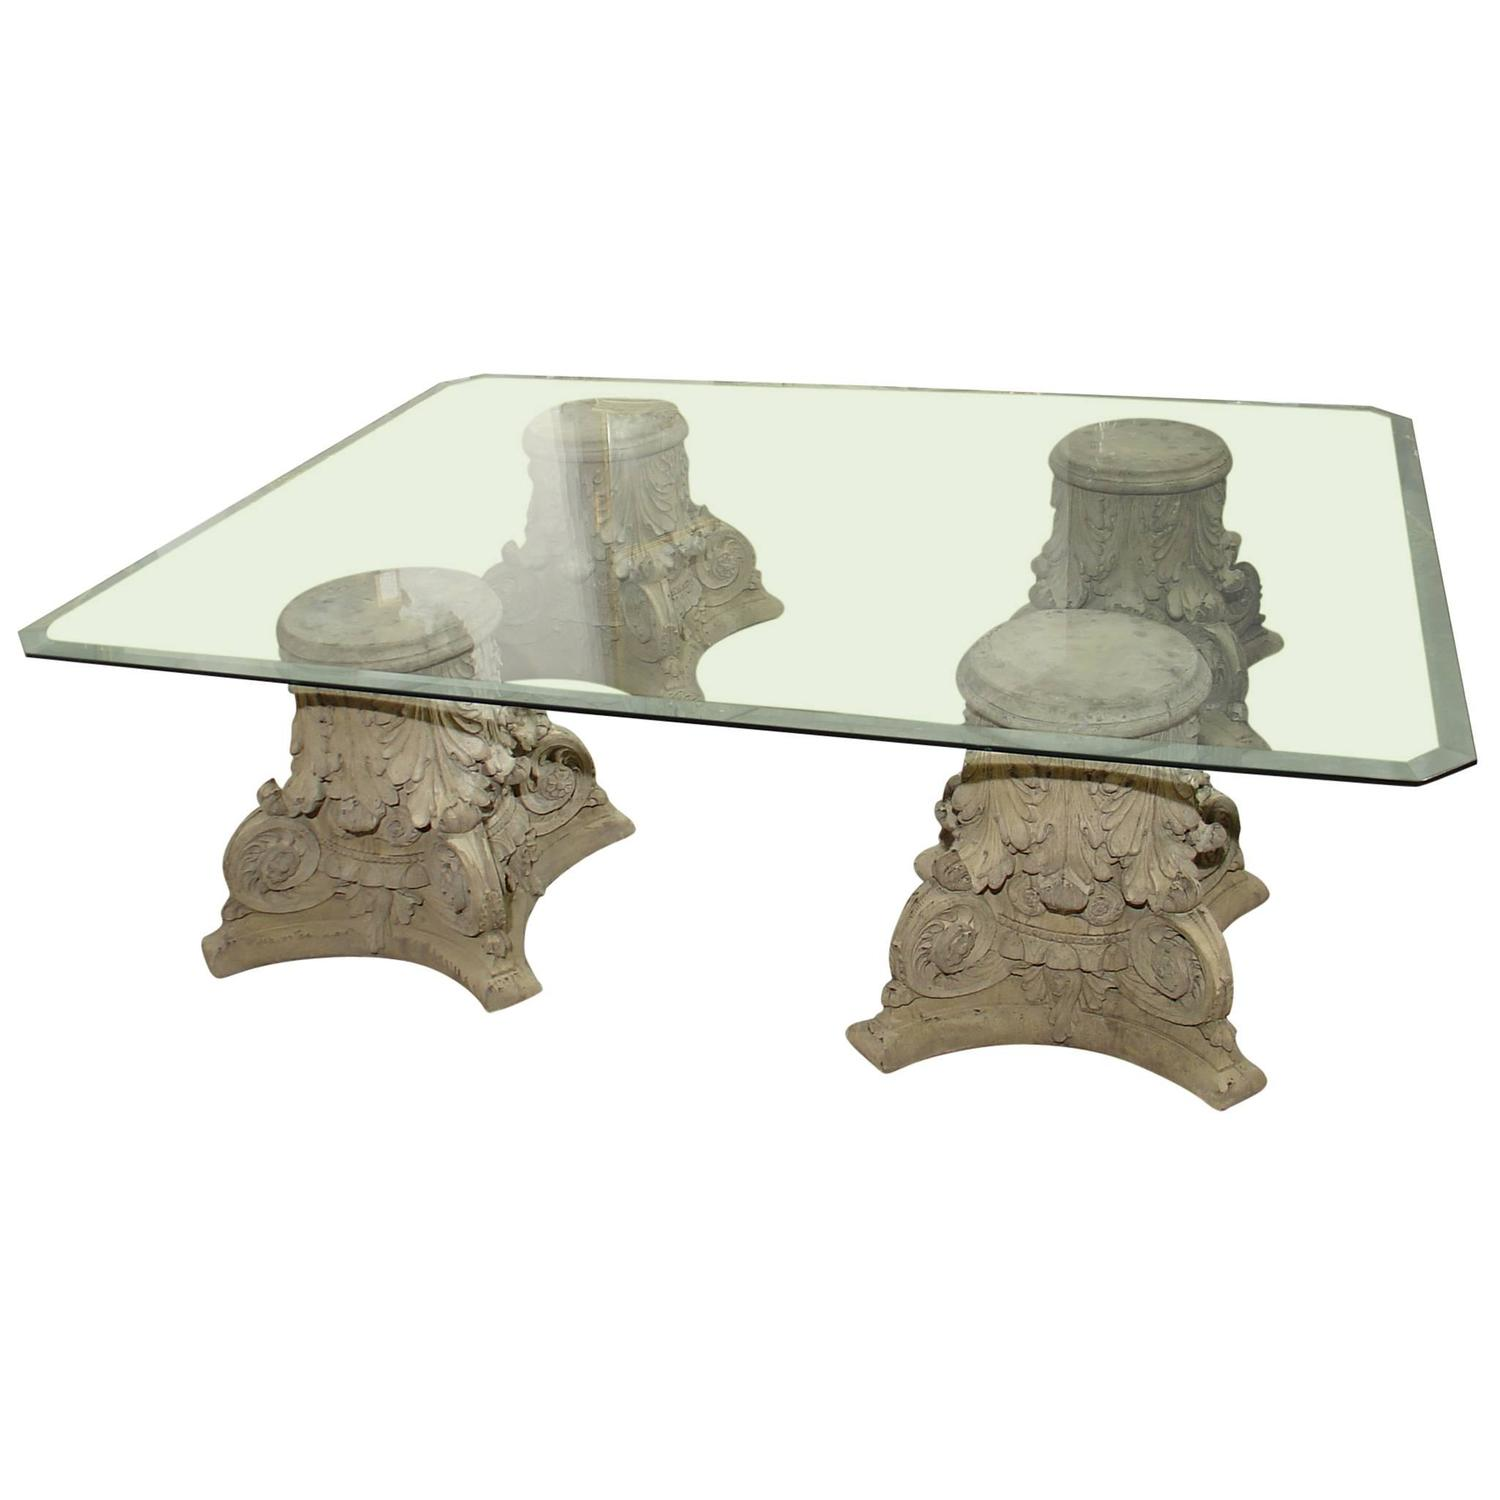 Beveled glass top coffee table on cast stone corinthian capital bases at 1stdibs Glass coffee table base